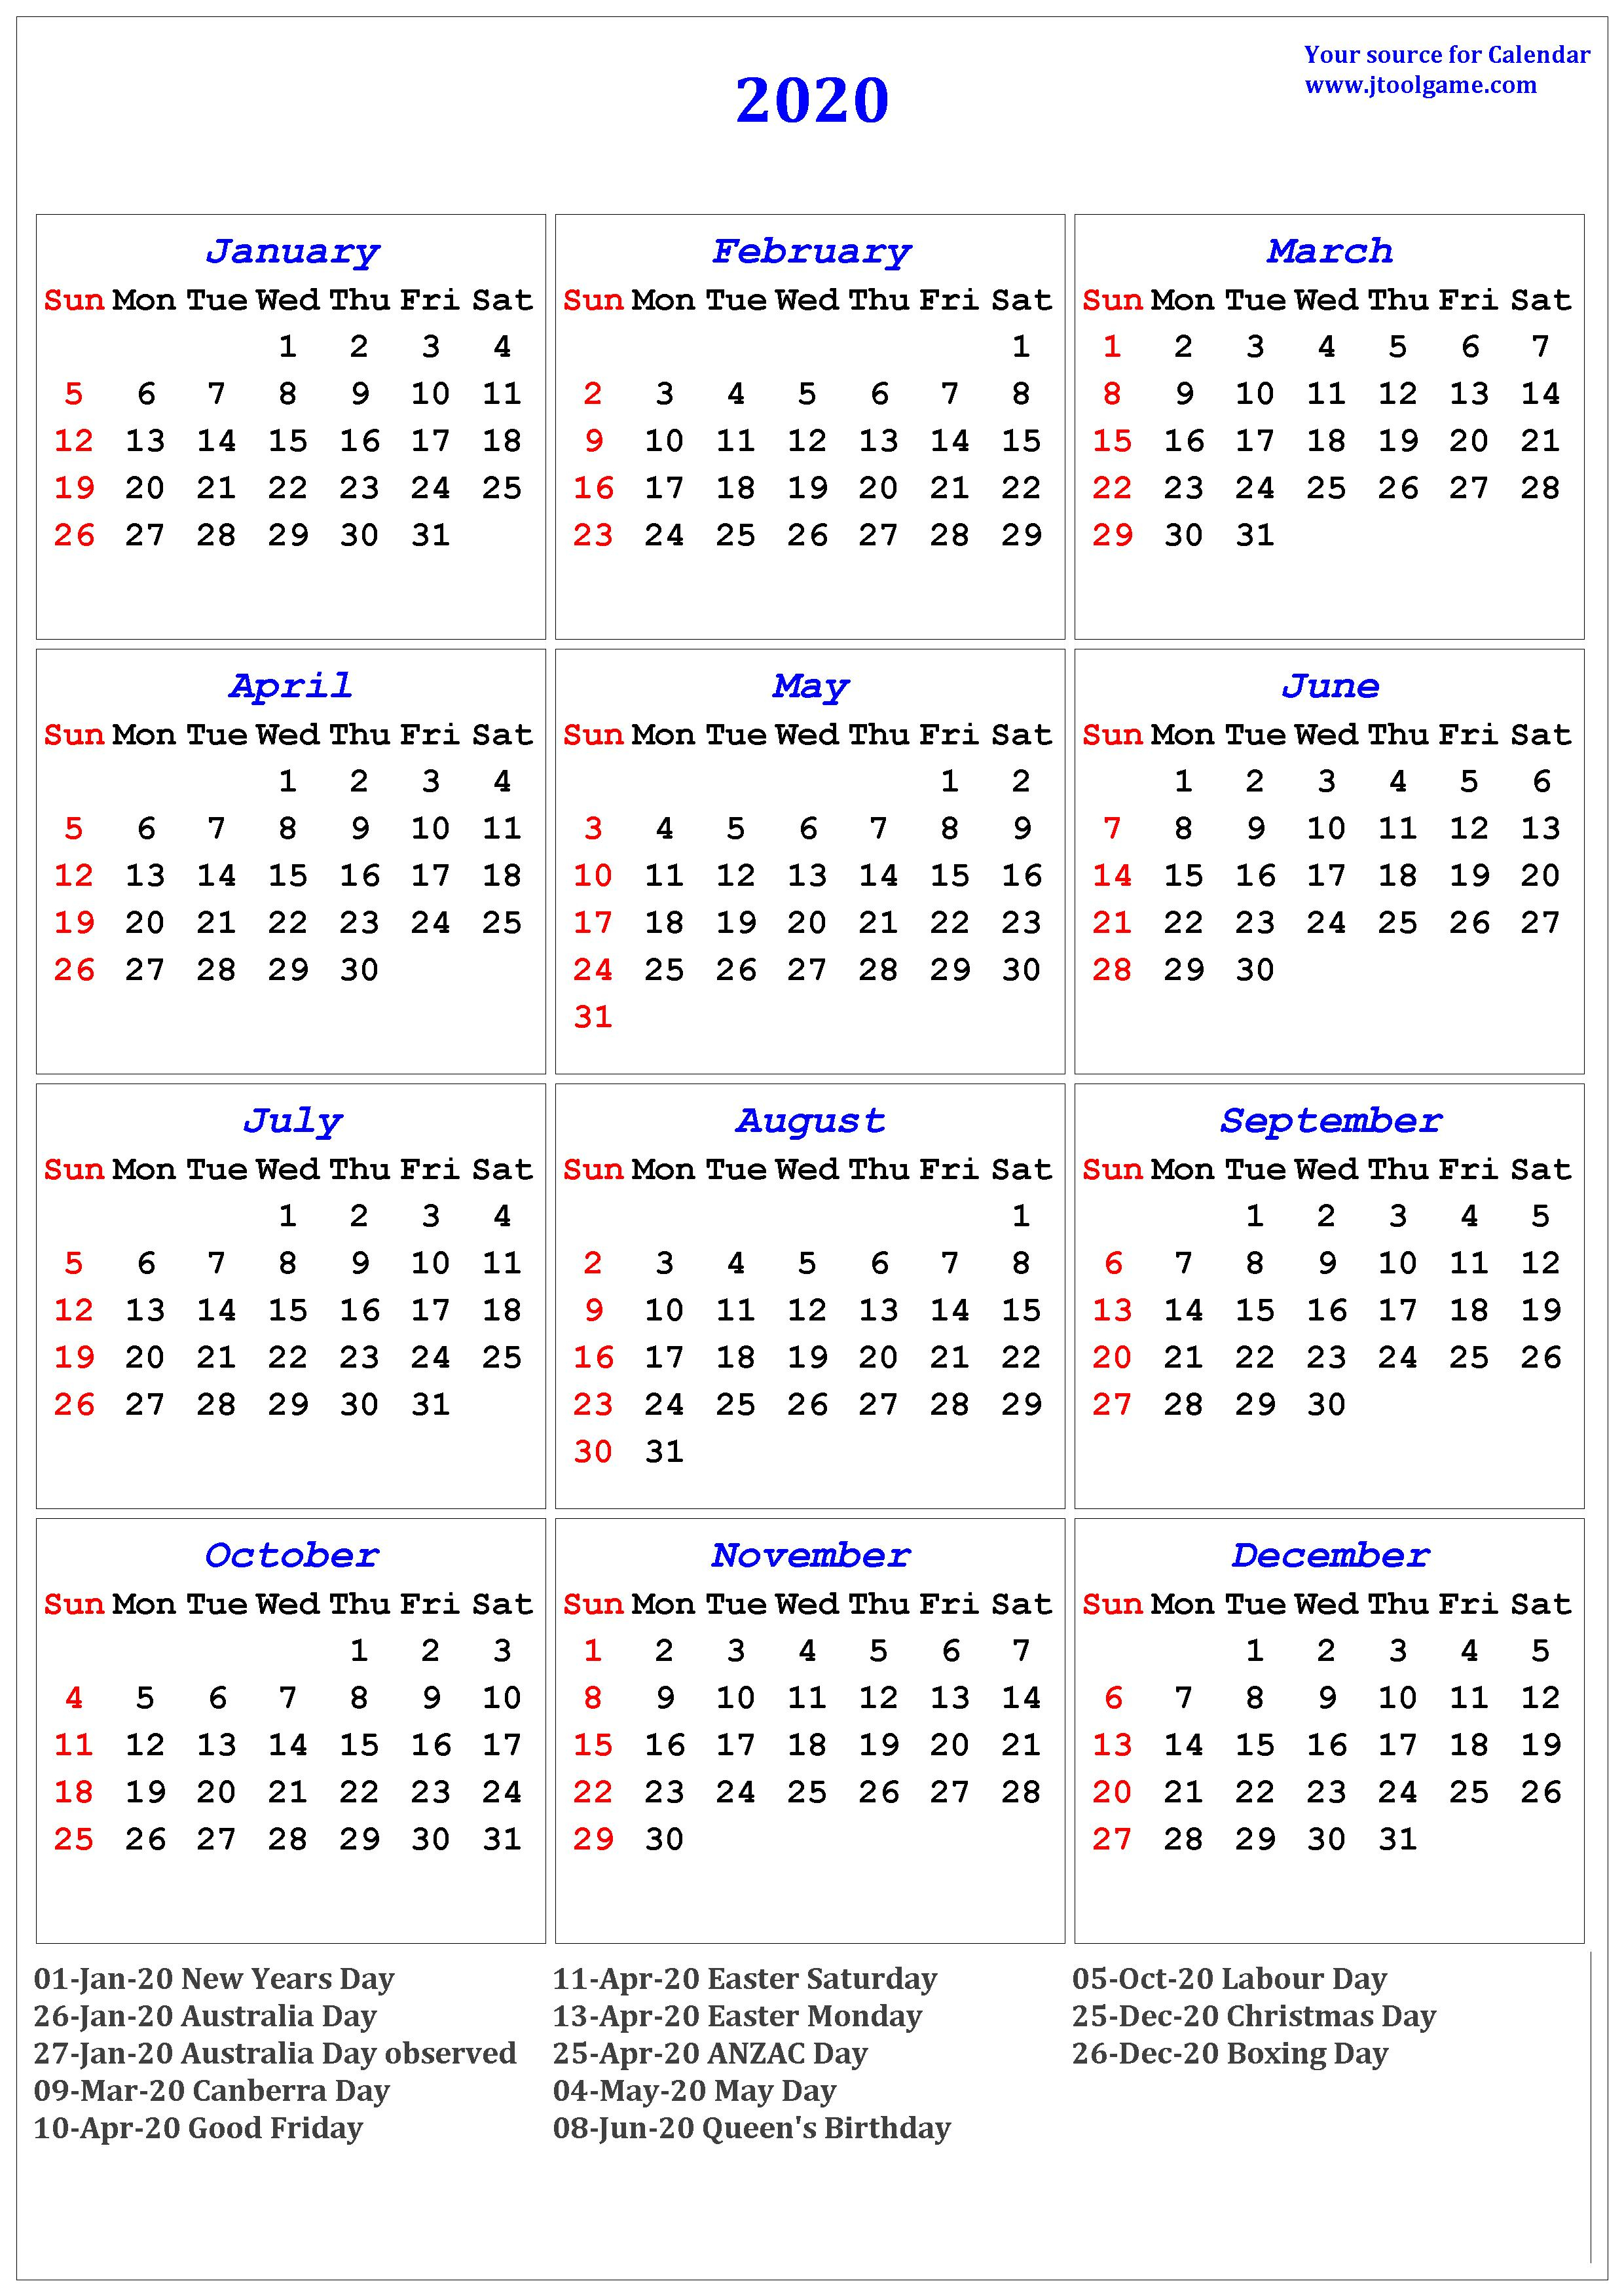 2020 Calendar - Printable Calendar. 2020 Calendar In Multiple Colors with 2020 Calendar Sunday Through Saturday